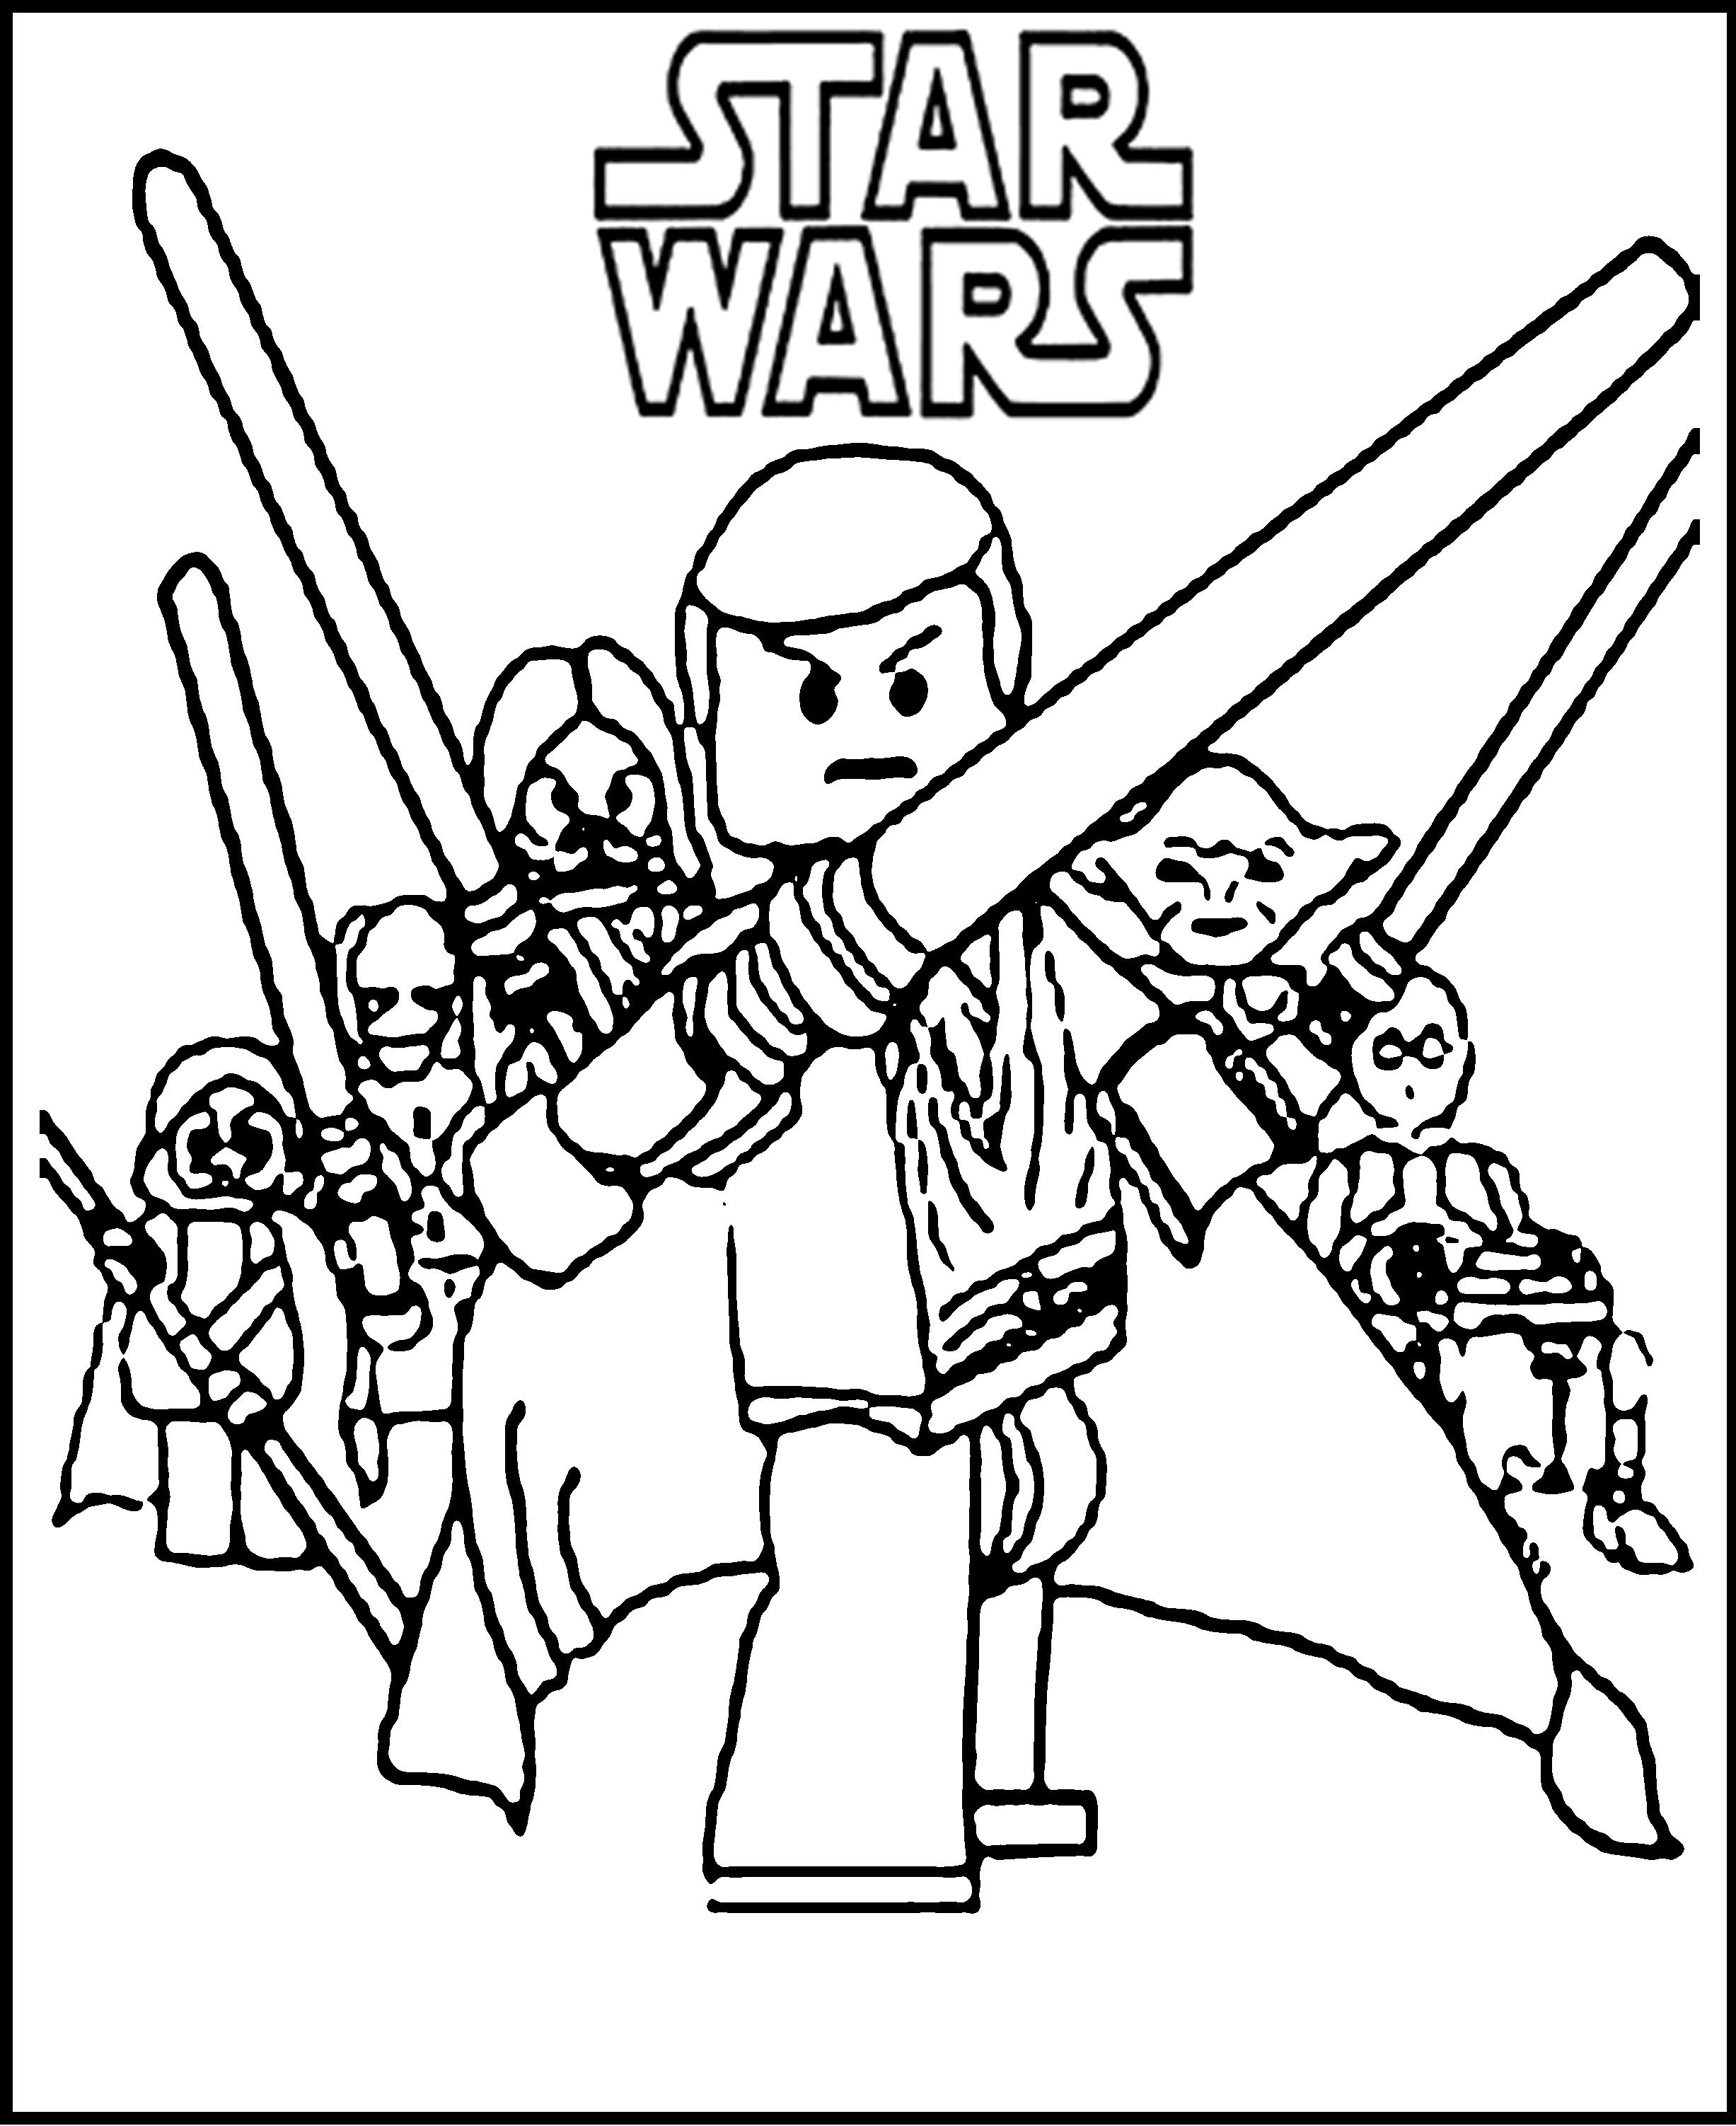 Free coloring pages for exercise - Star Wars Coloring Pages Ginorma Kids Thingkid 5881 Star Wars Az Coloring Pages